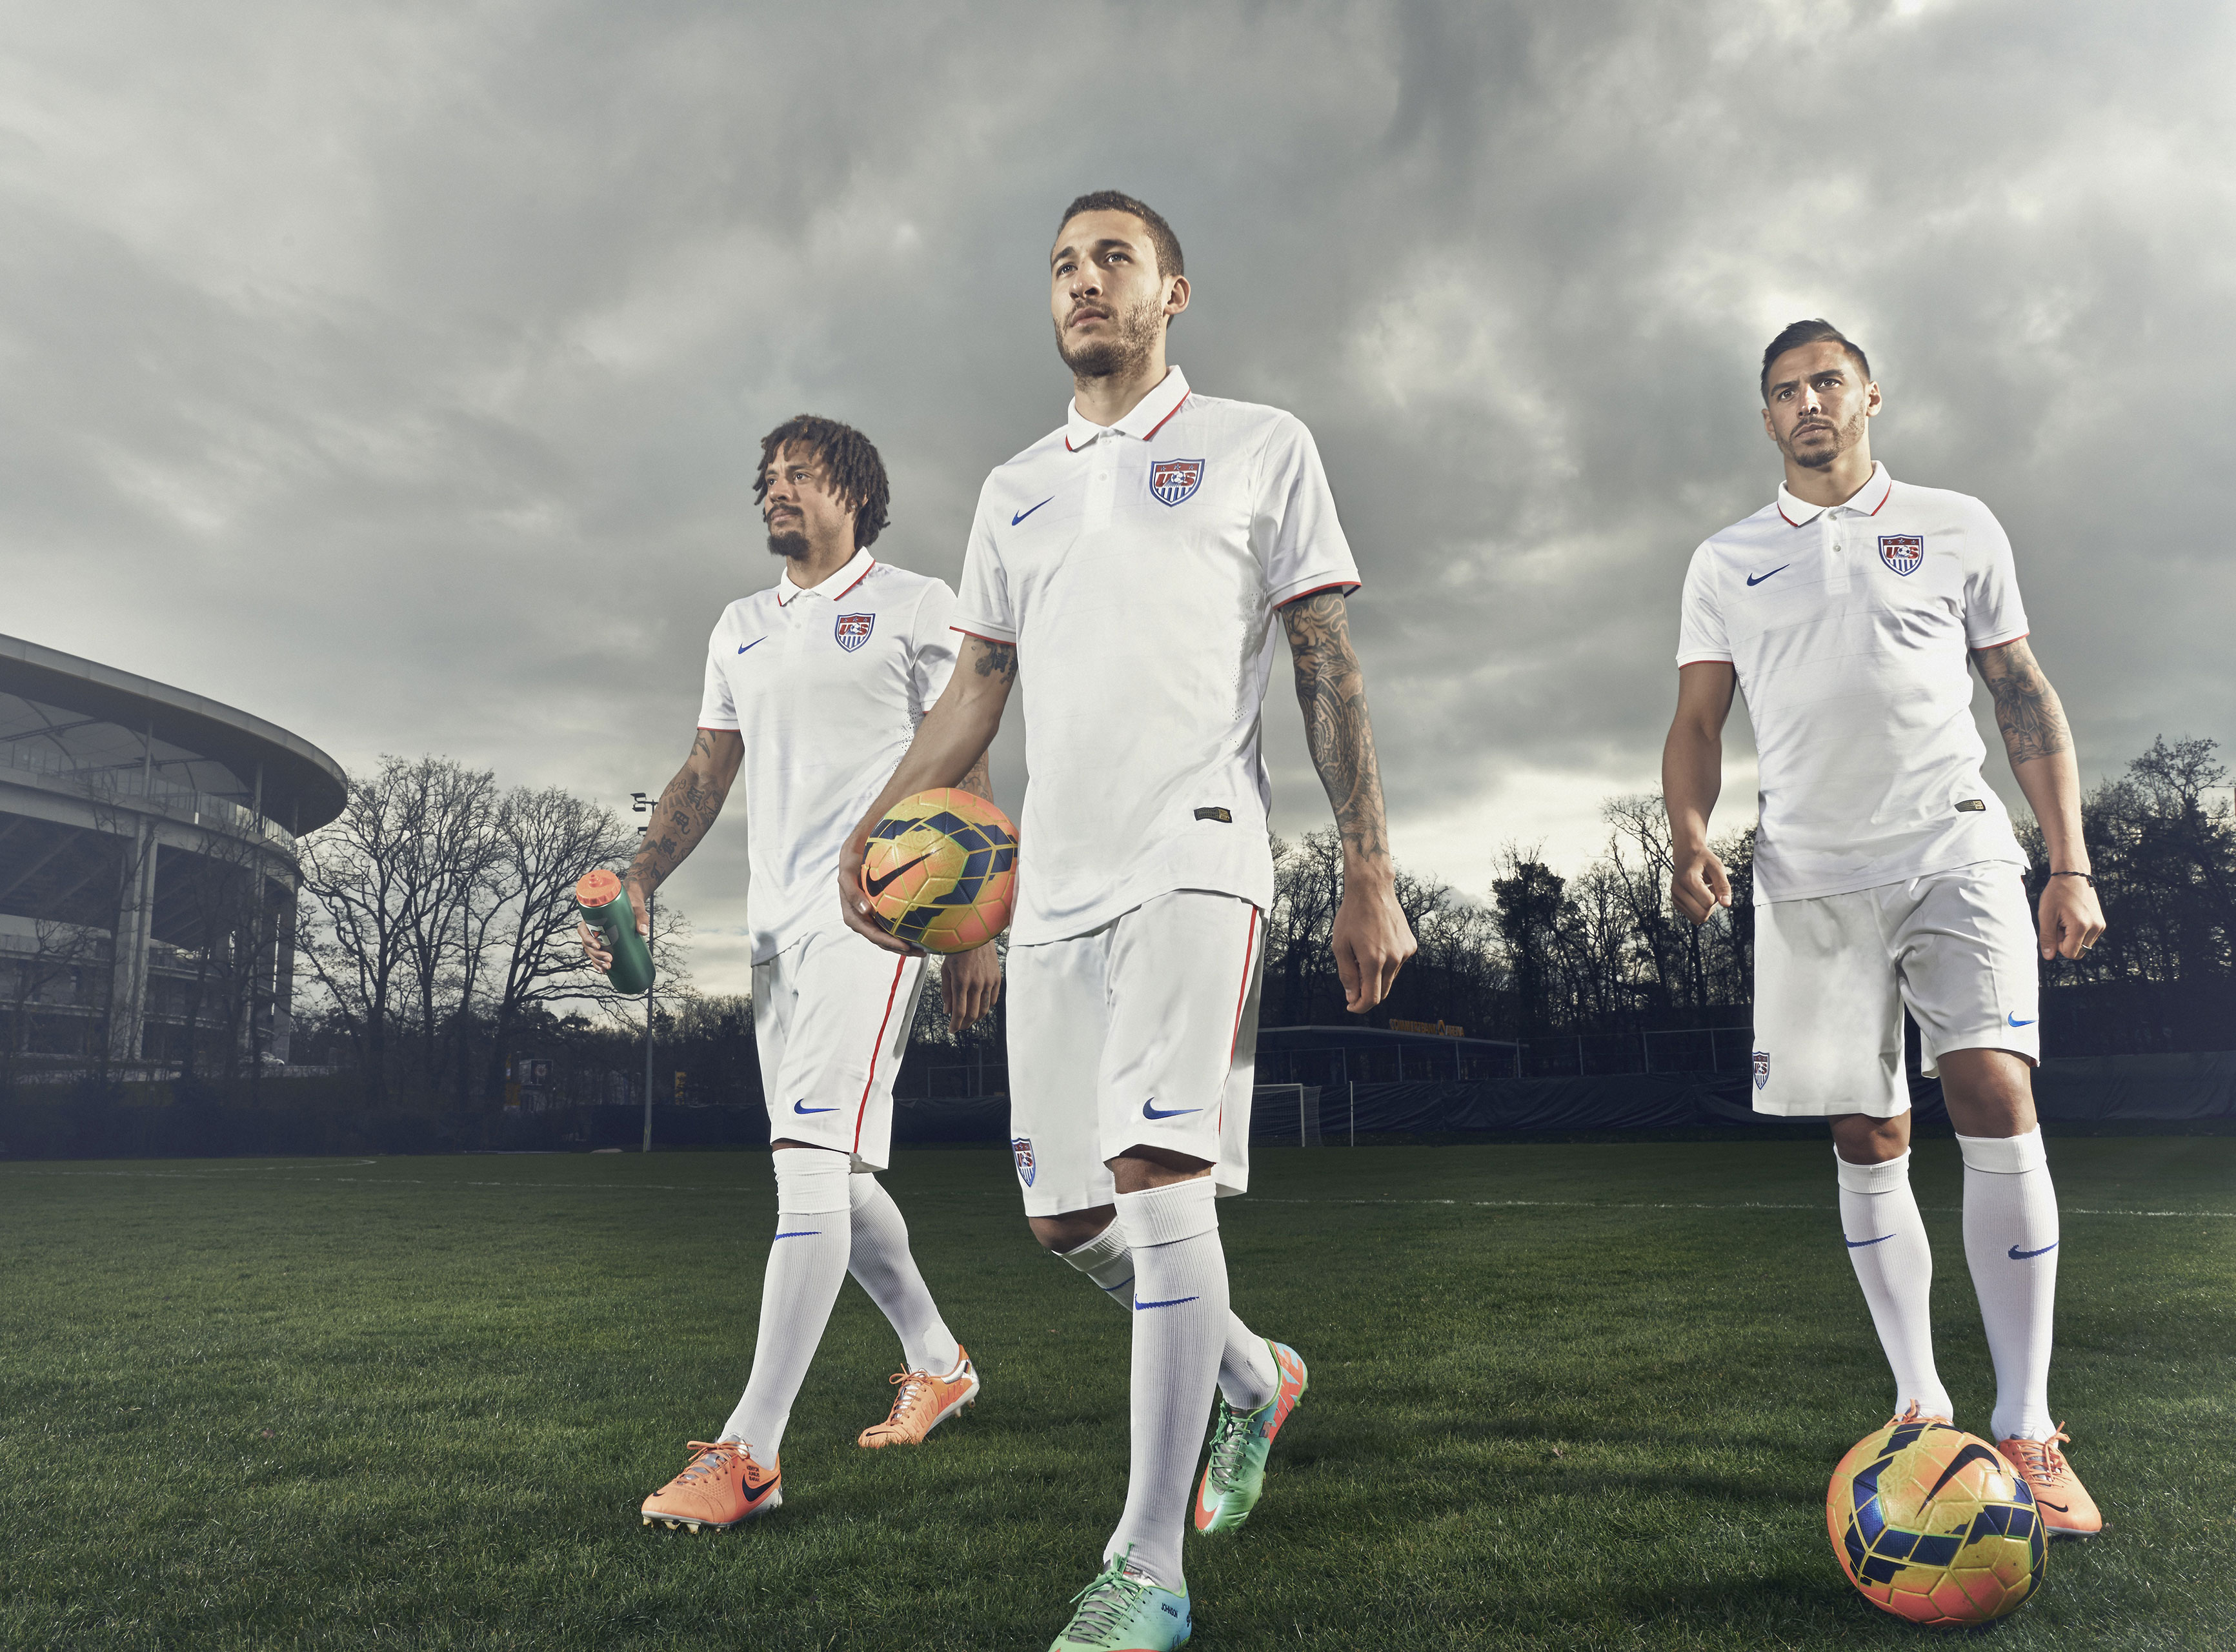 Left to right: Jermain Jones, Fabian Johnson and Geoff Cameron. From  Stars, Stripes and Soccer.  June 23, 2014 issue.